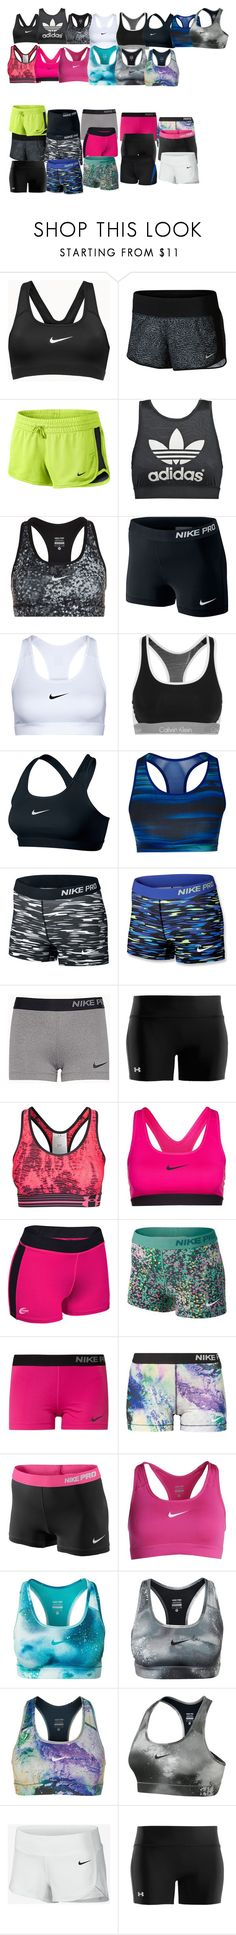 """""""Sports wear"""" by supercait12 on Polyvore featuring NIKE, adidas Originals, Calvin Klein Underwear, adidas, Under Armour, women's clothing, women's fashion, women, female and woman"""